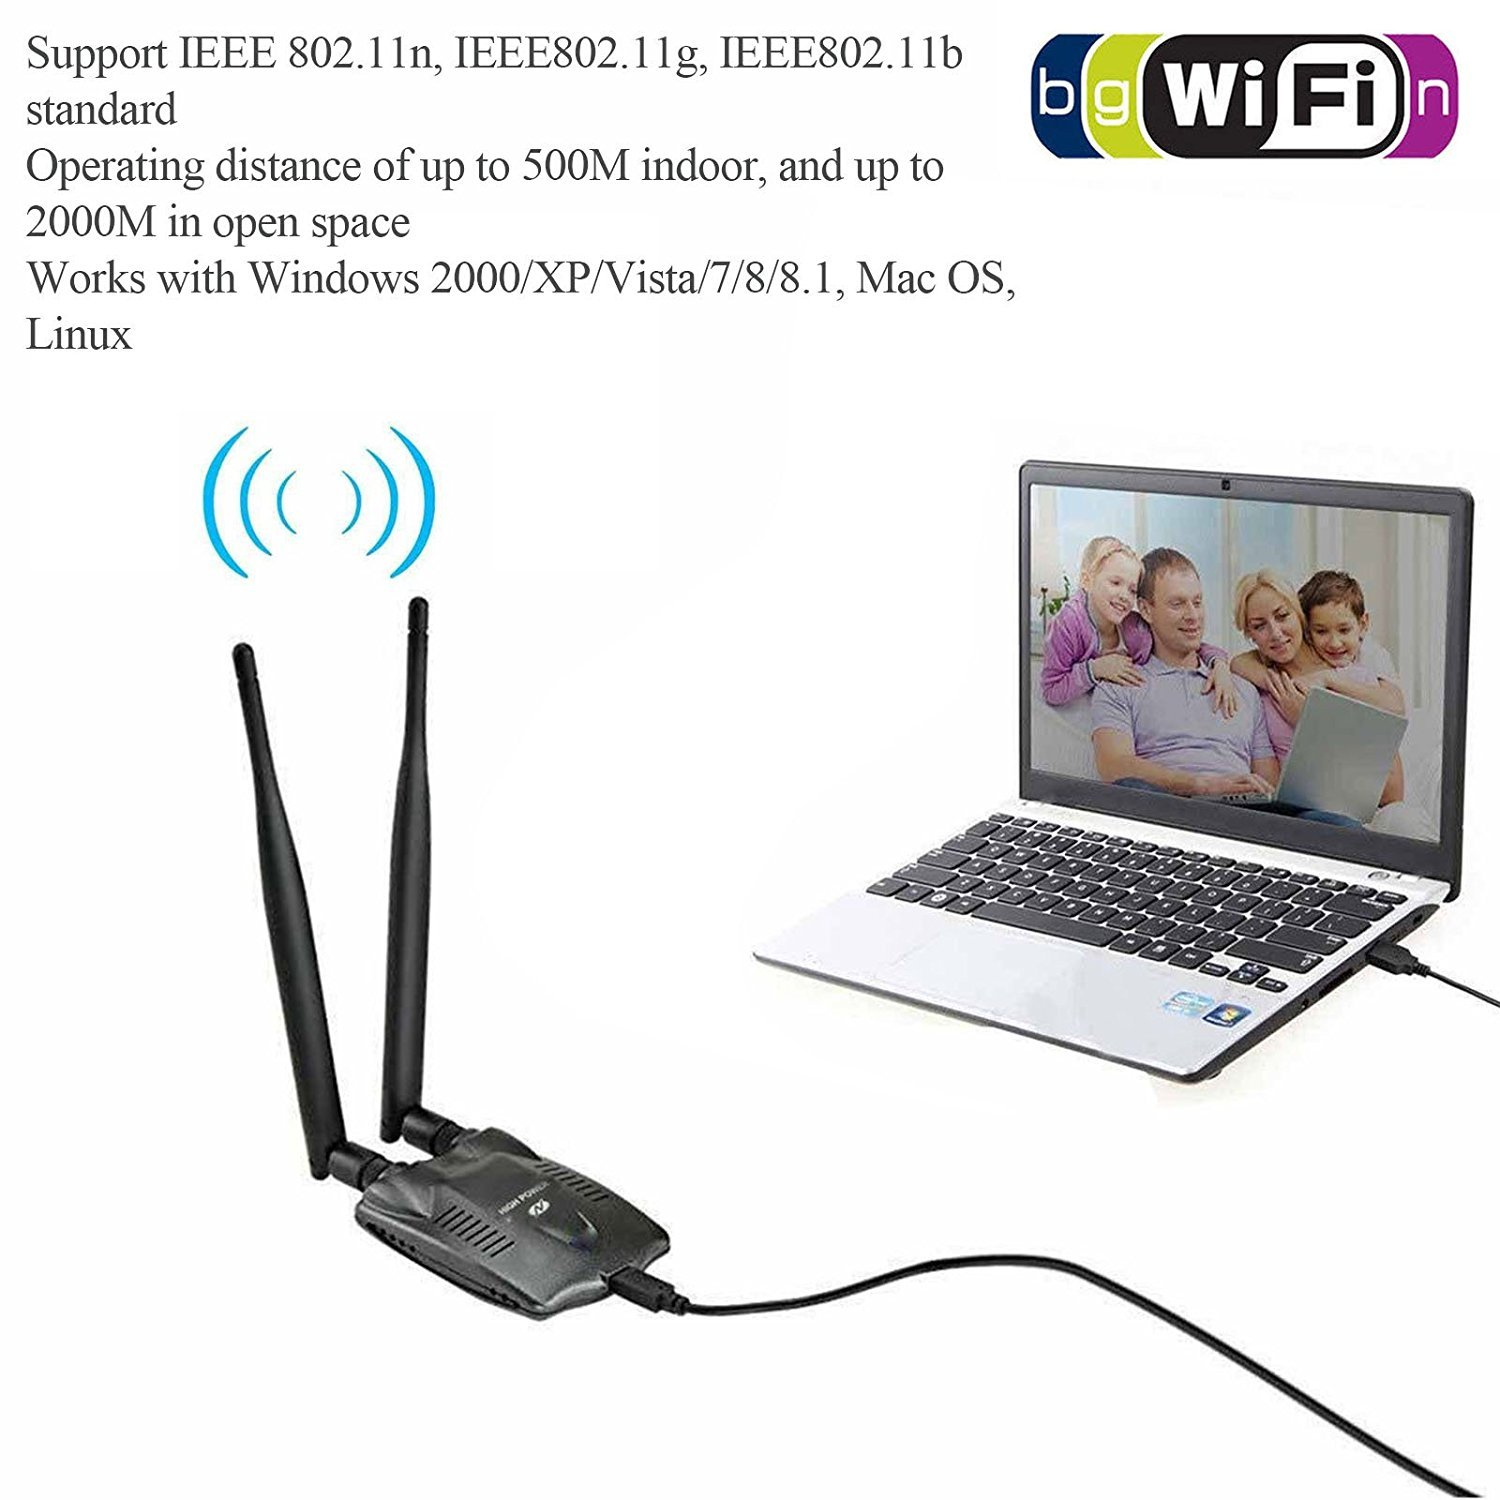 EEEKit High Power USB WI-FI Wireless Adapter Network Card Receiver 3000MW Signal 150Mbps 6dBi 802.11 b/g/n Dual Antenna 2.4Ghz for PC Laptop Computer by EEEKit (Image #3)